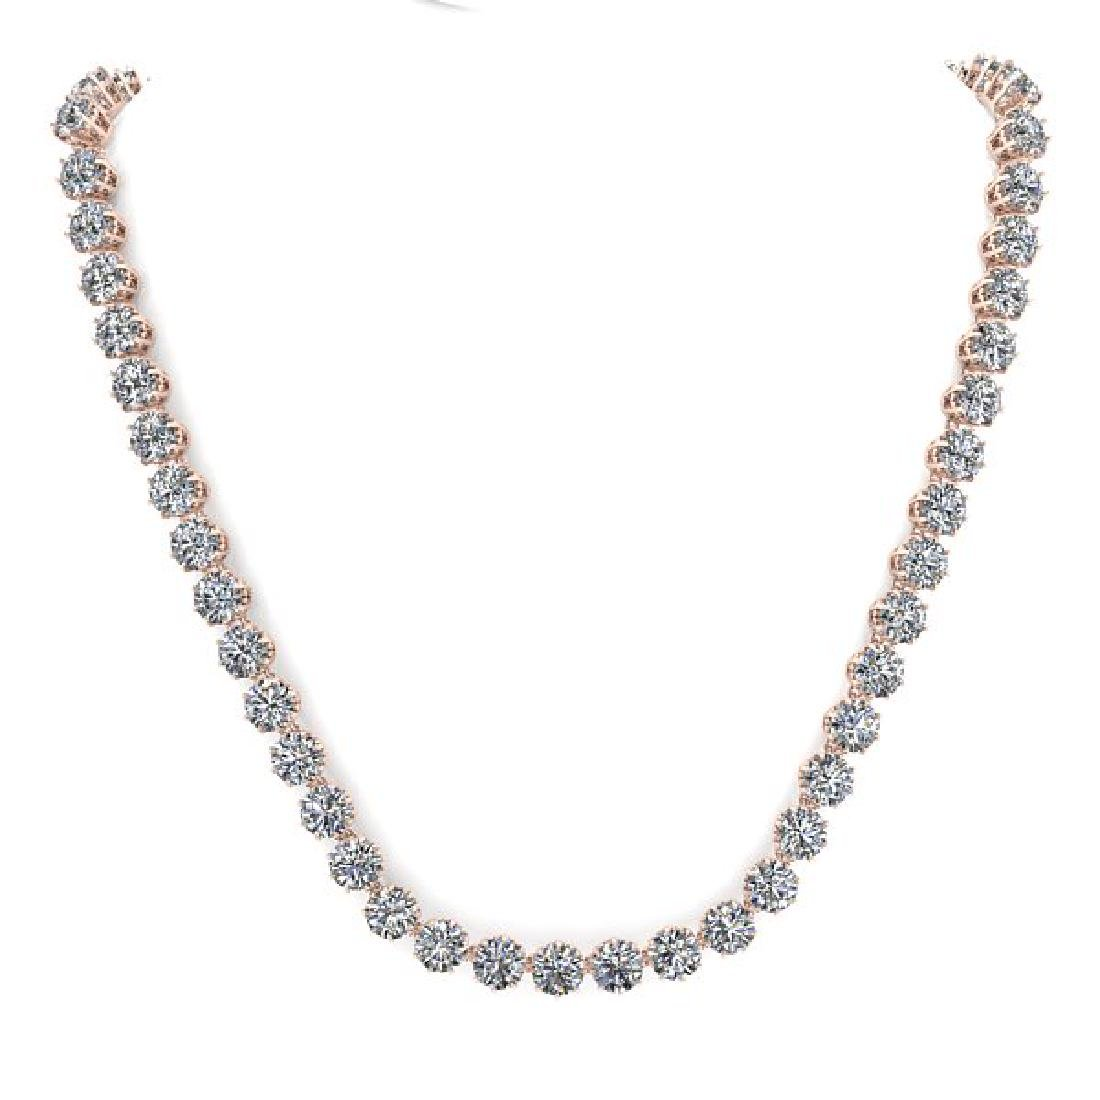 30 CTW SI Certified Diamond Necklace 18K Rose Gold - 3